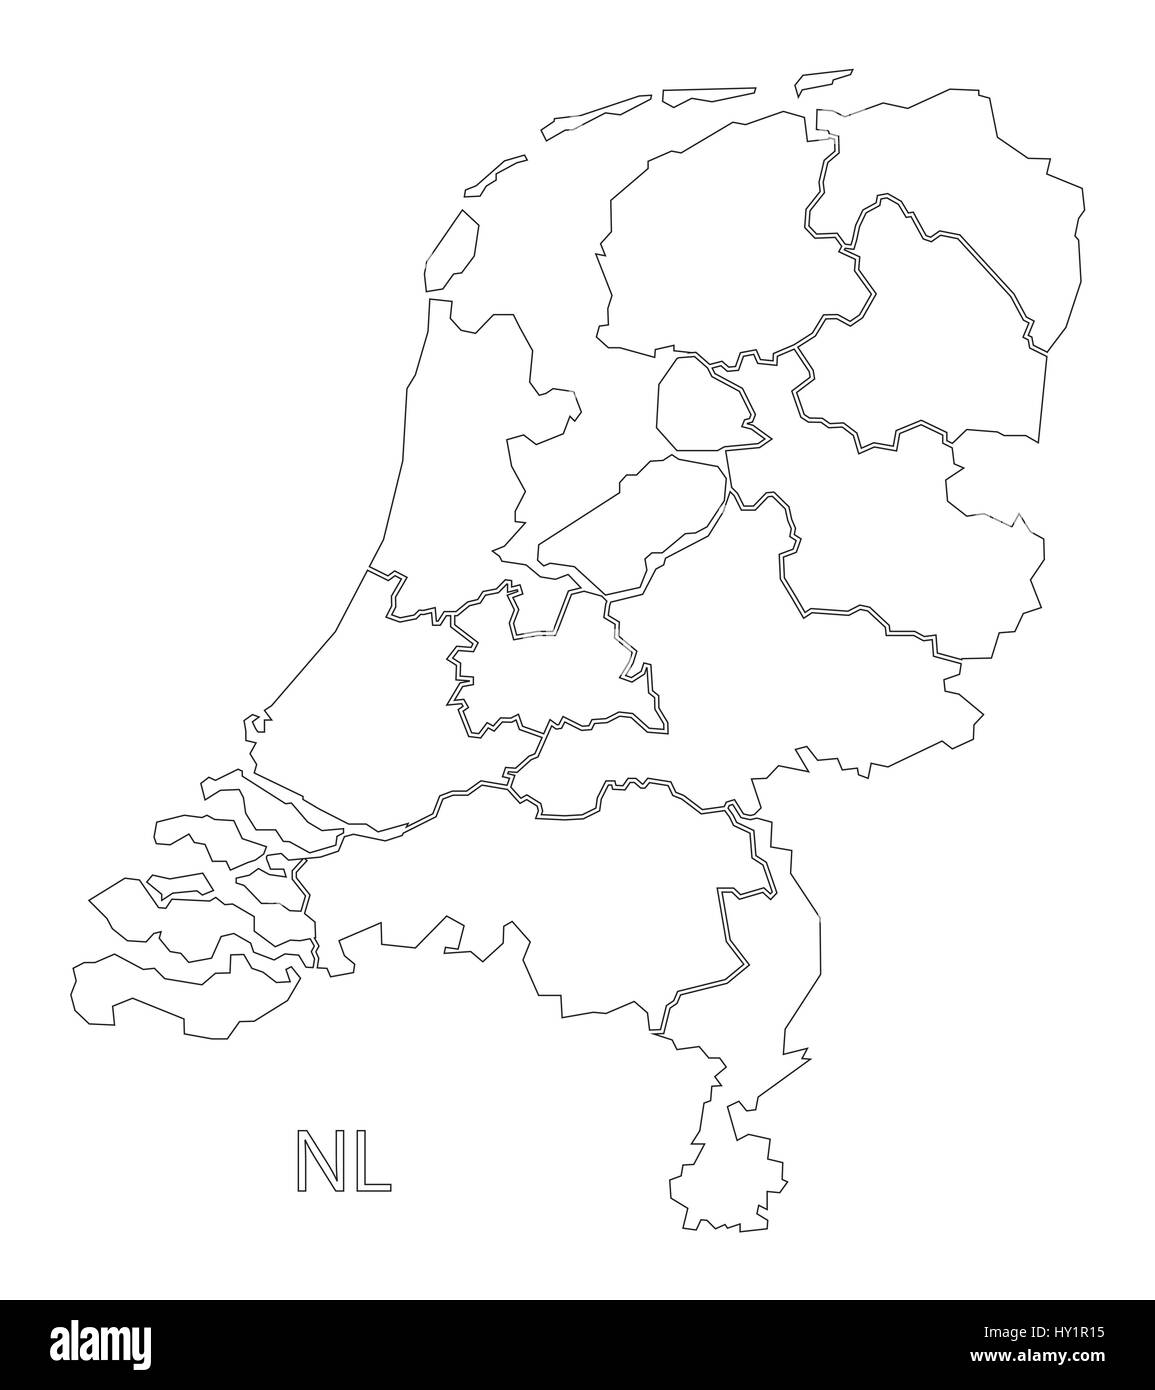 Netherlands outline silhouette map illustration with provinces Stock